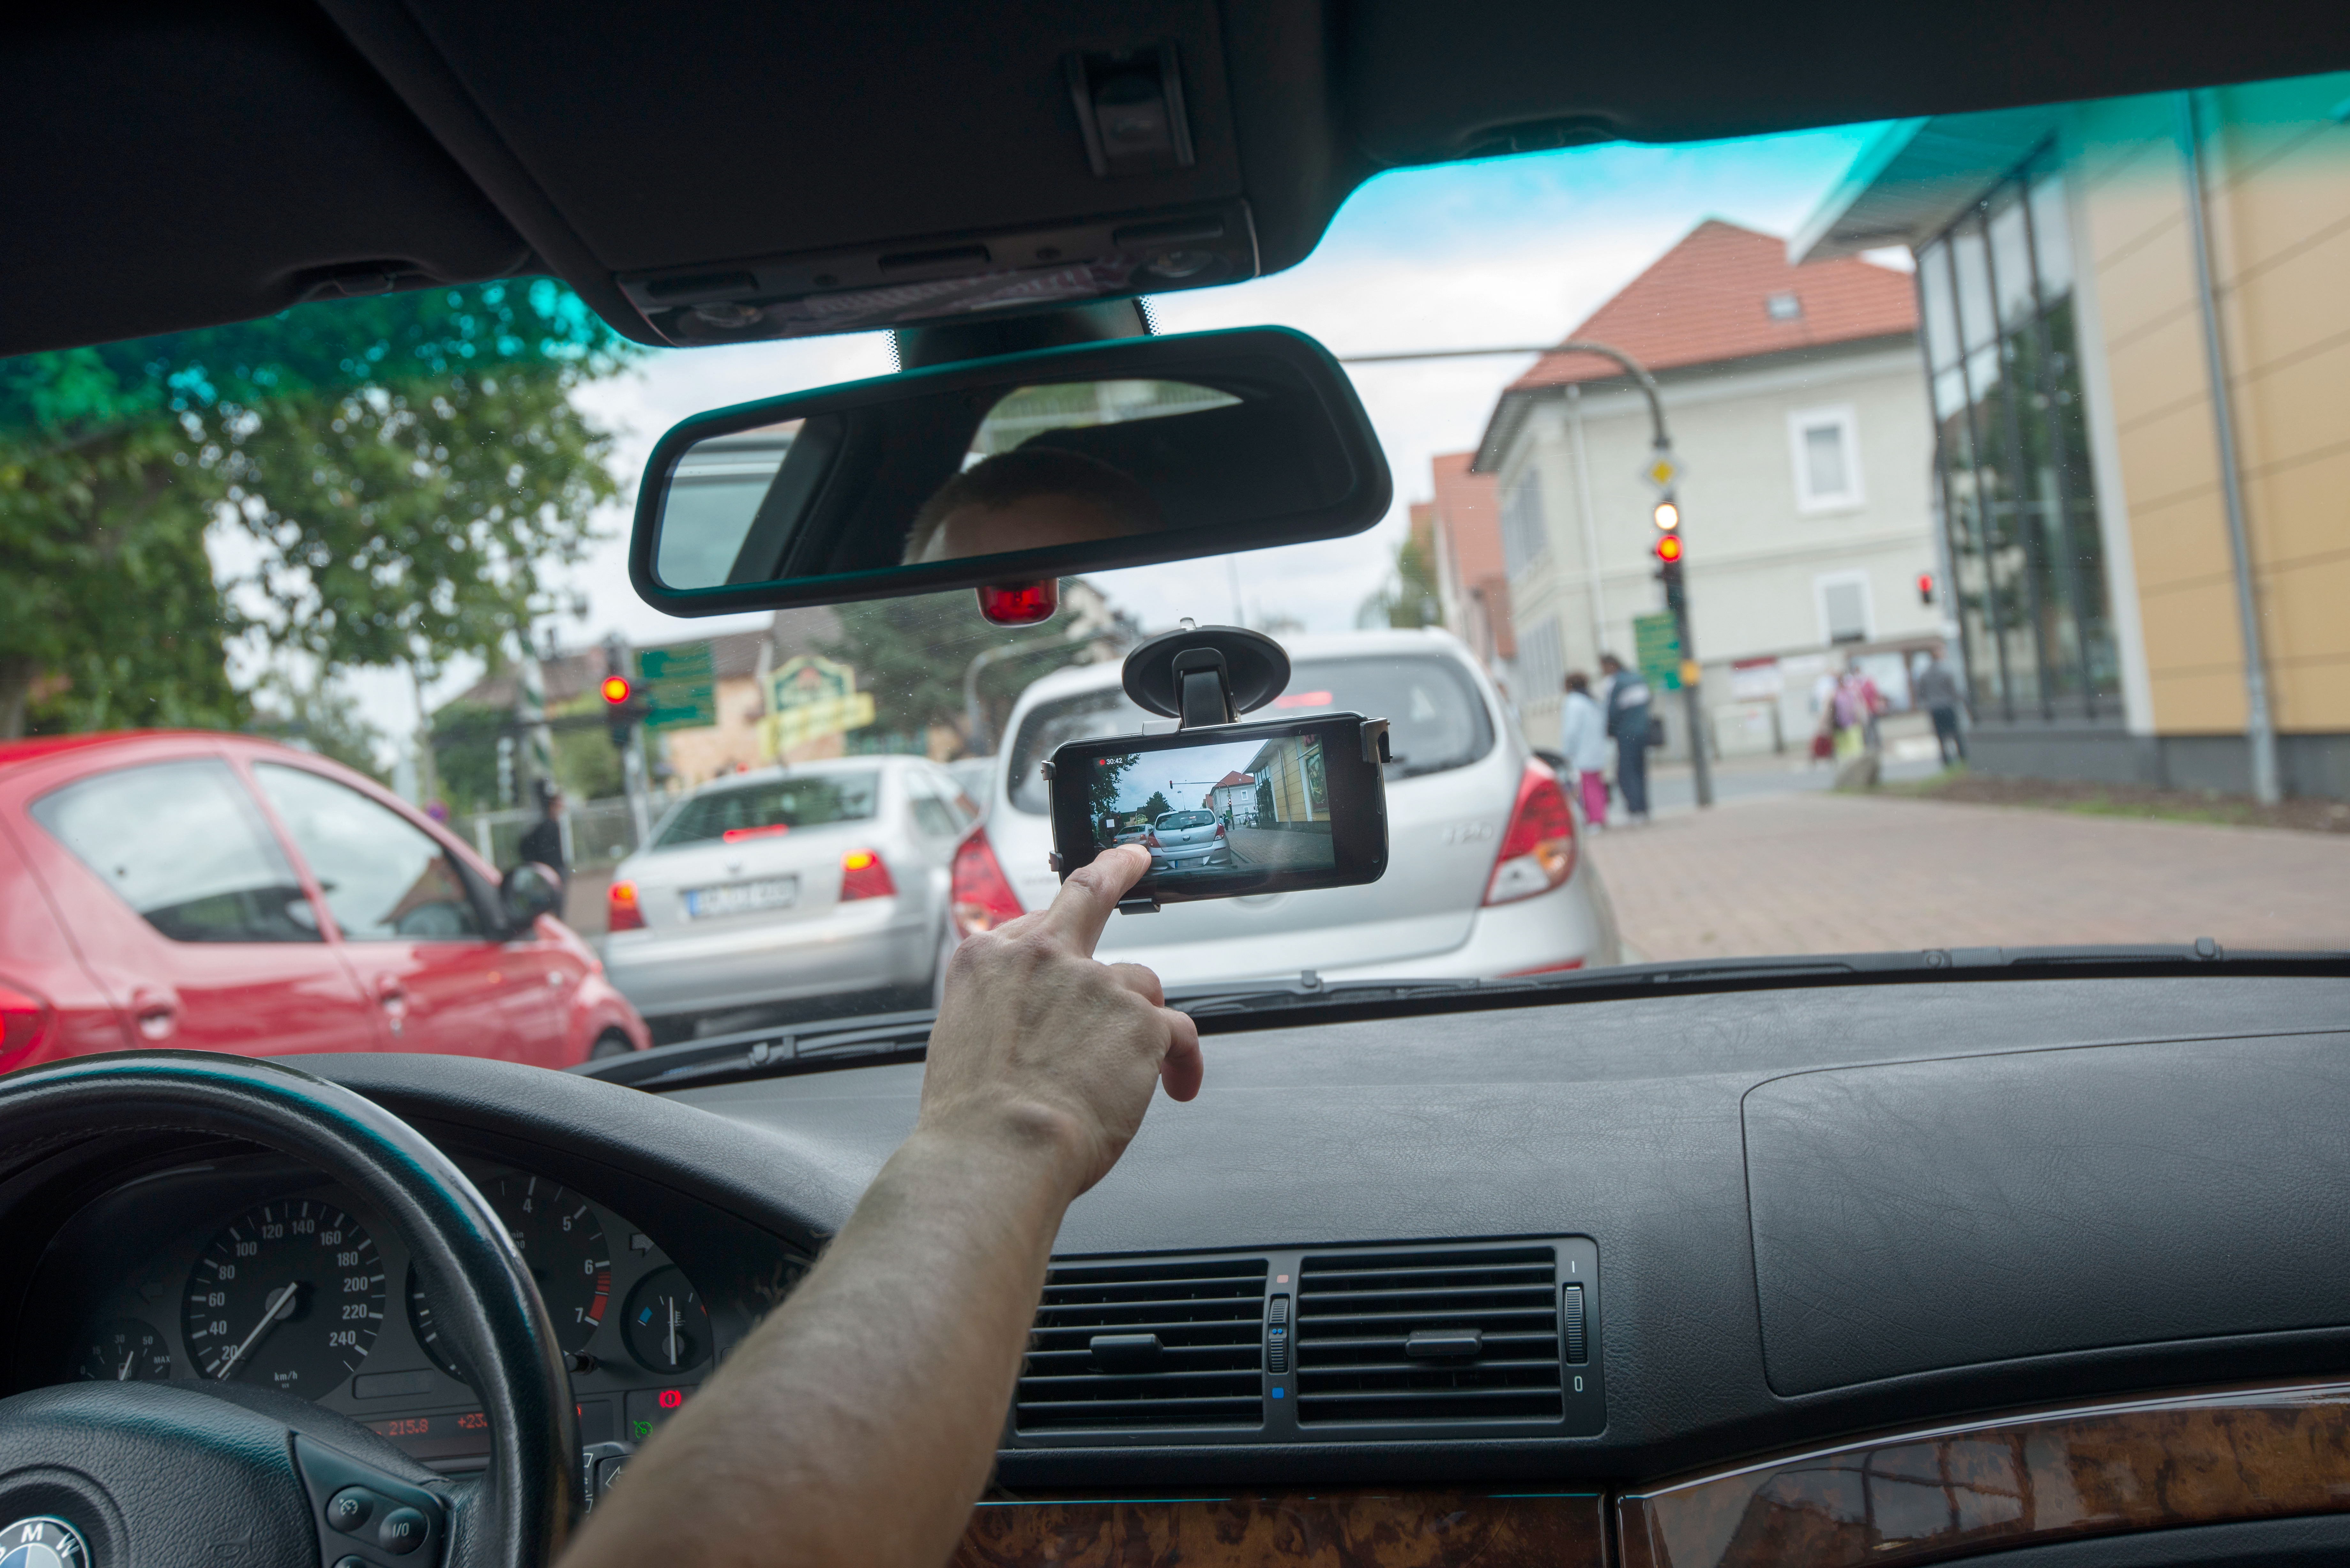 Study shows hands-free tech may still be a big driving distraction class=